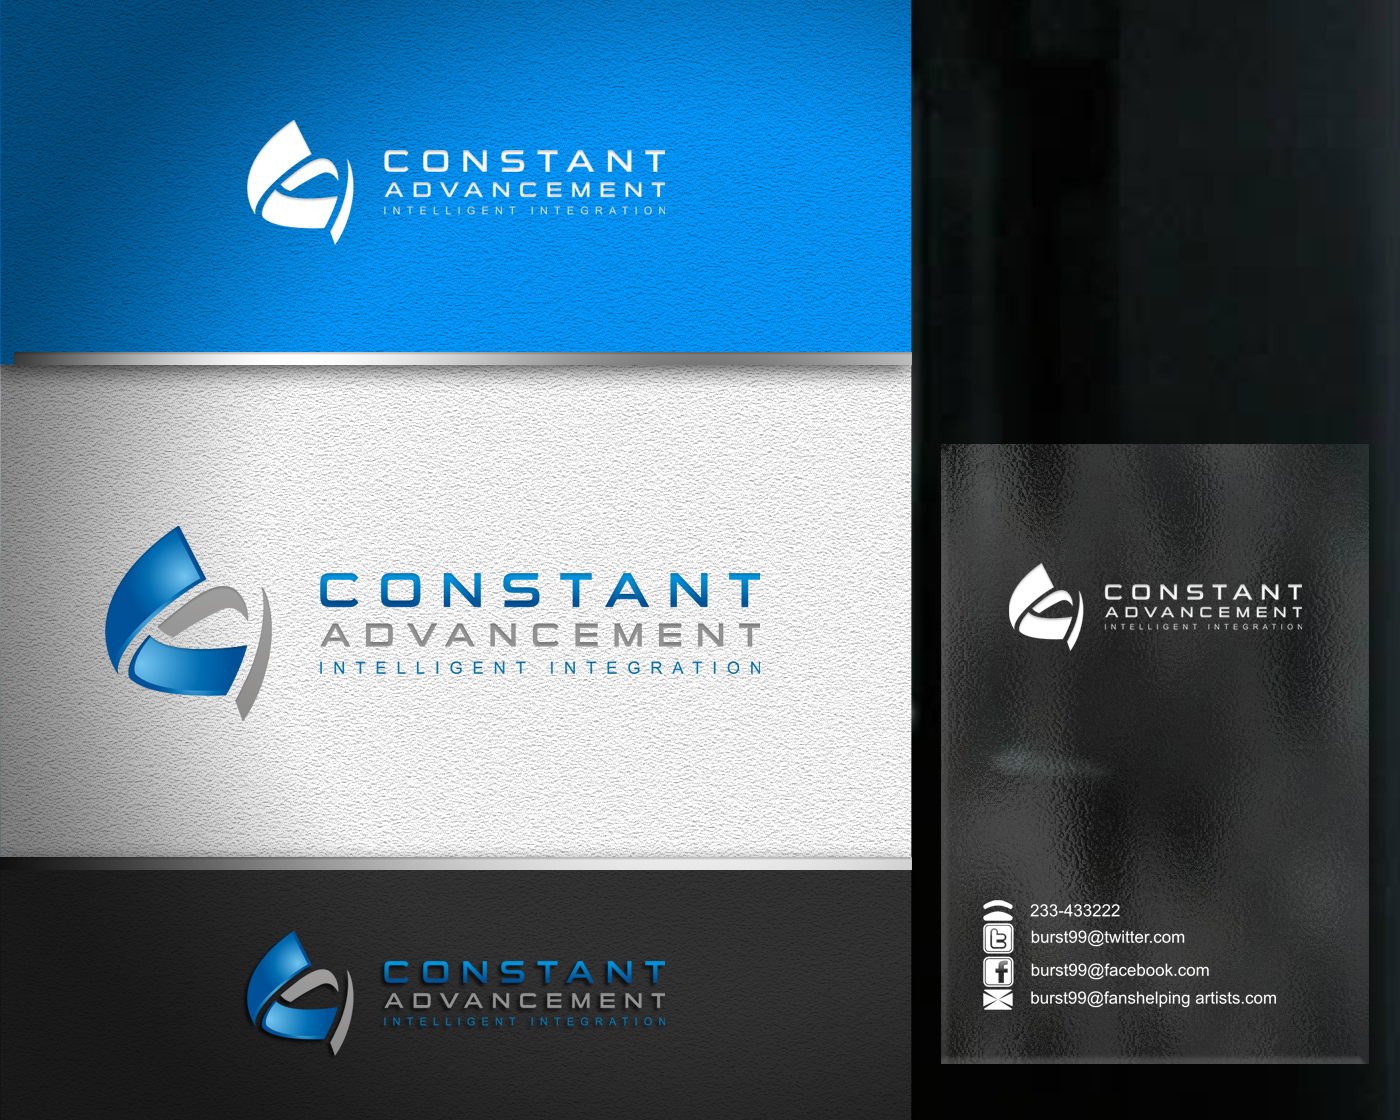 Create the next logo for Constant Advancement